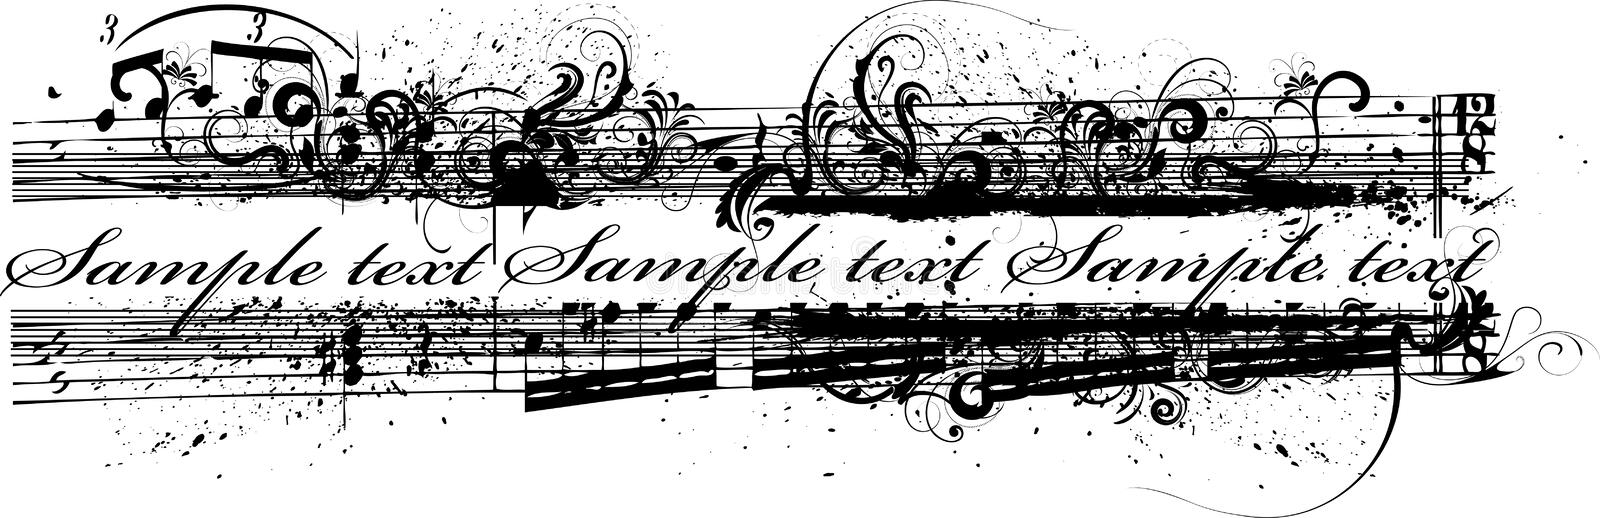 Grunge banner. Grungy banner with musical notes and floral decorations royalty free illustration